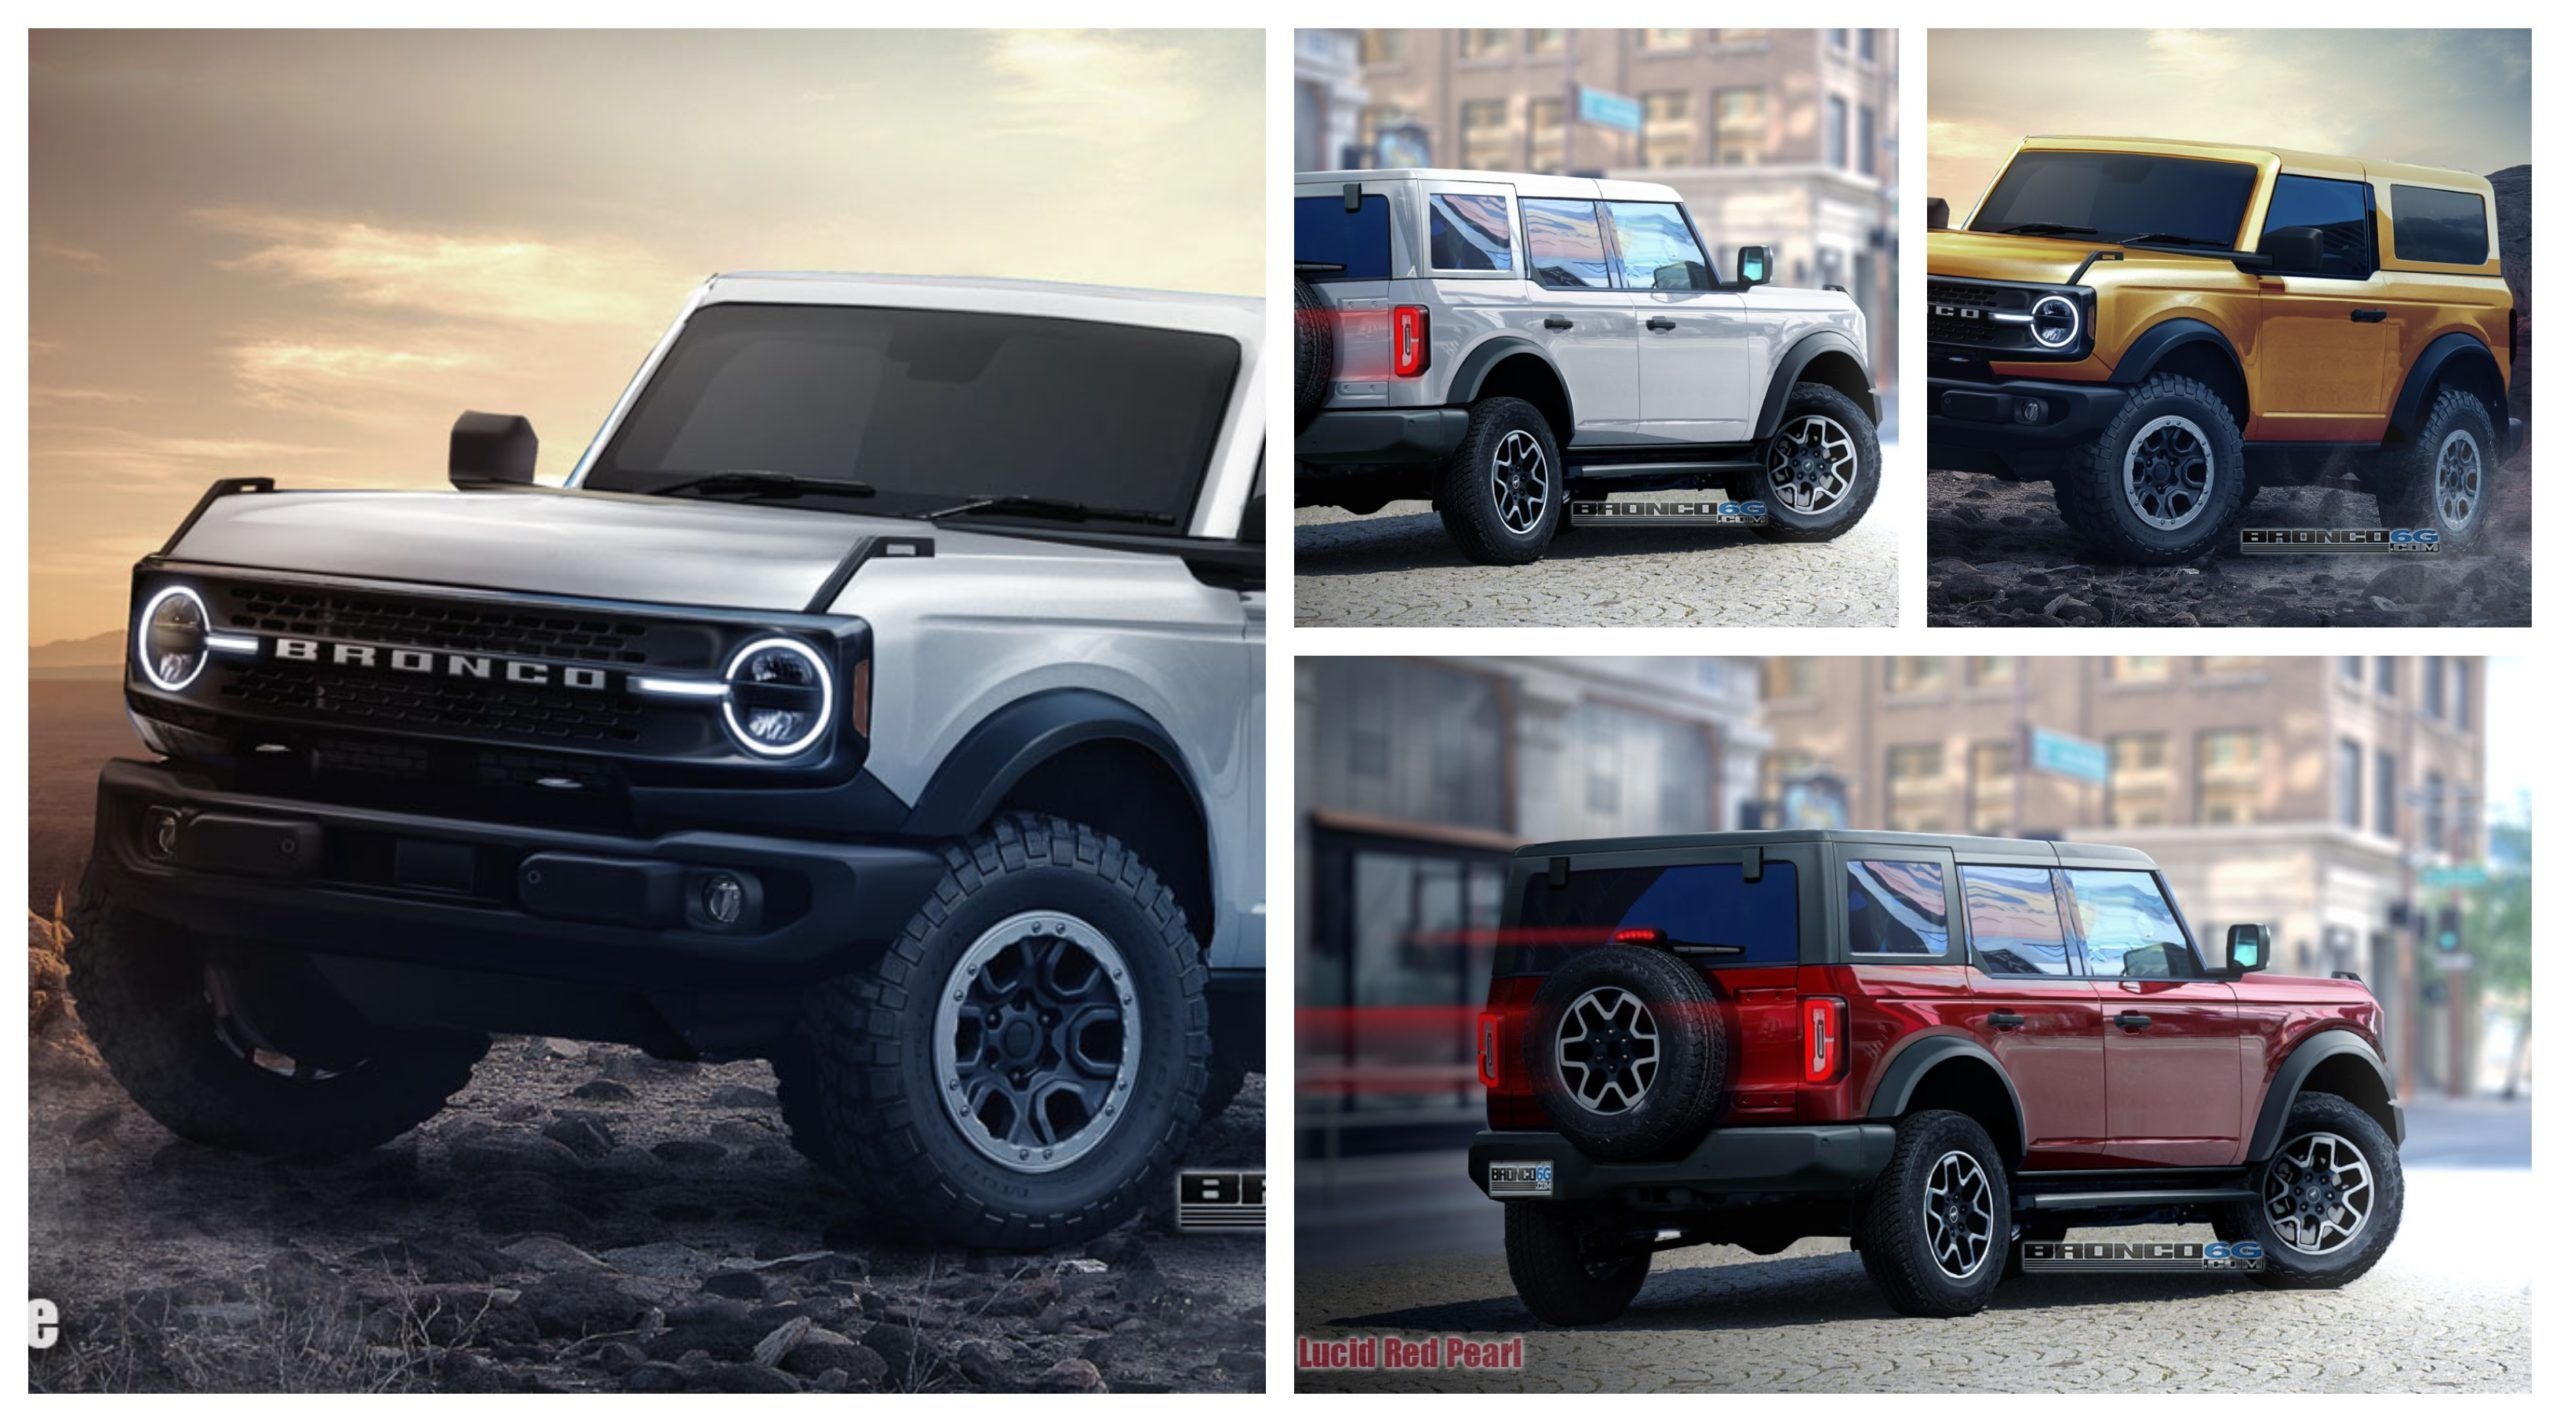 We Bring To You Photo Realistic Preview Cgi Of The Production 2021 Ford Bronco In 2 Door And 4 Door Styles Shown In All The Bronco Ford Bronco Broncos Images